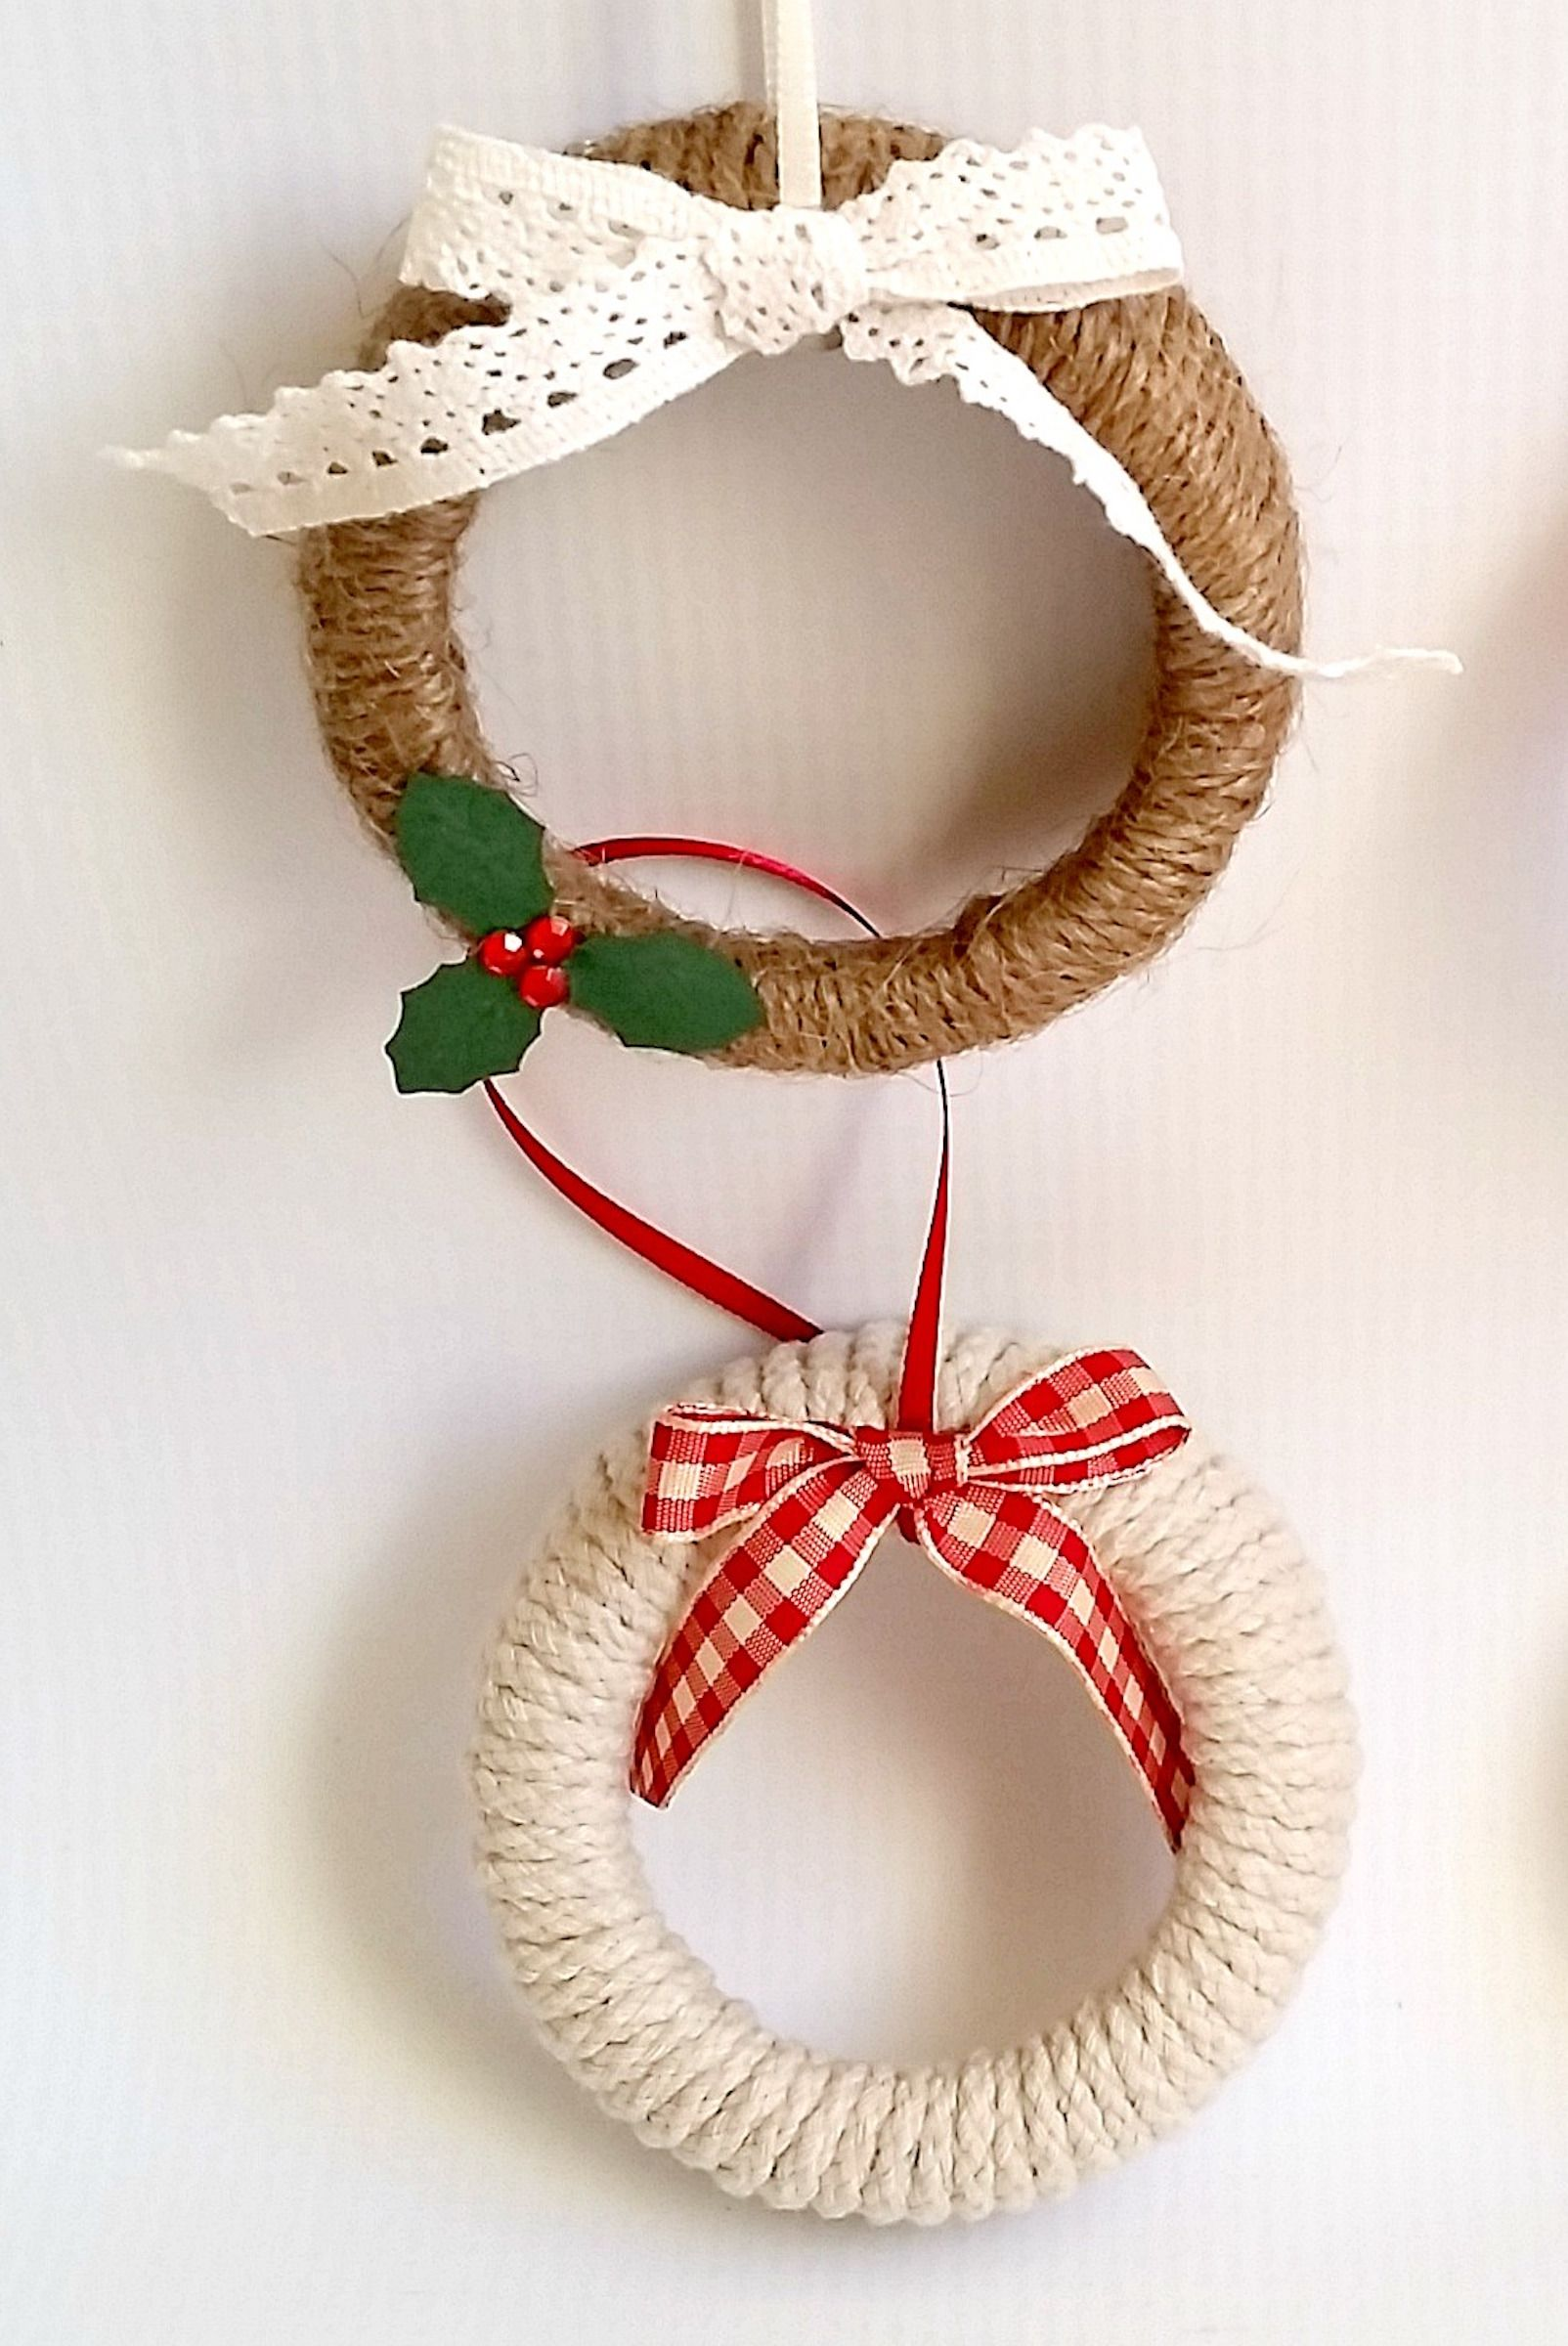 30 Best Christmas Activities for Kids - DIY Holiday Crafts for Children